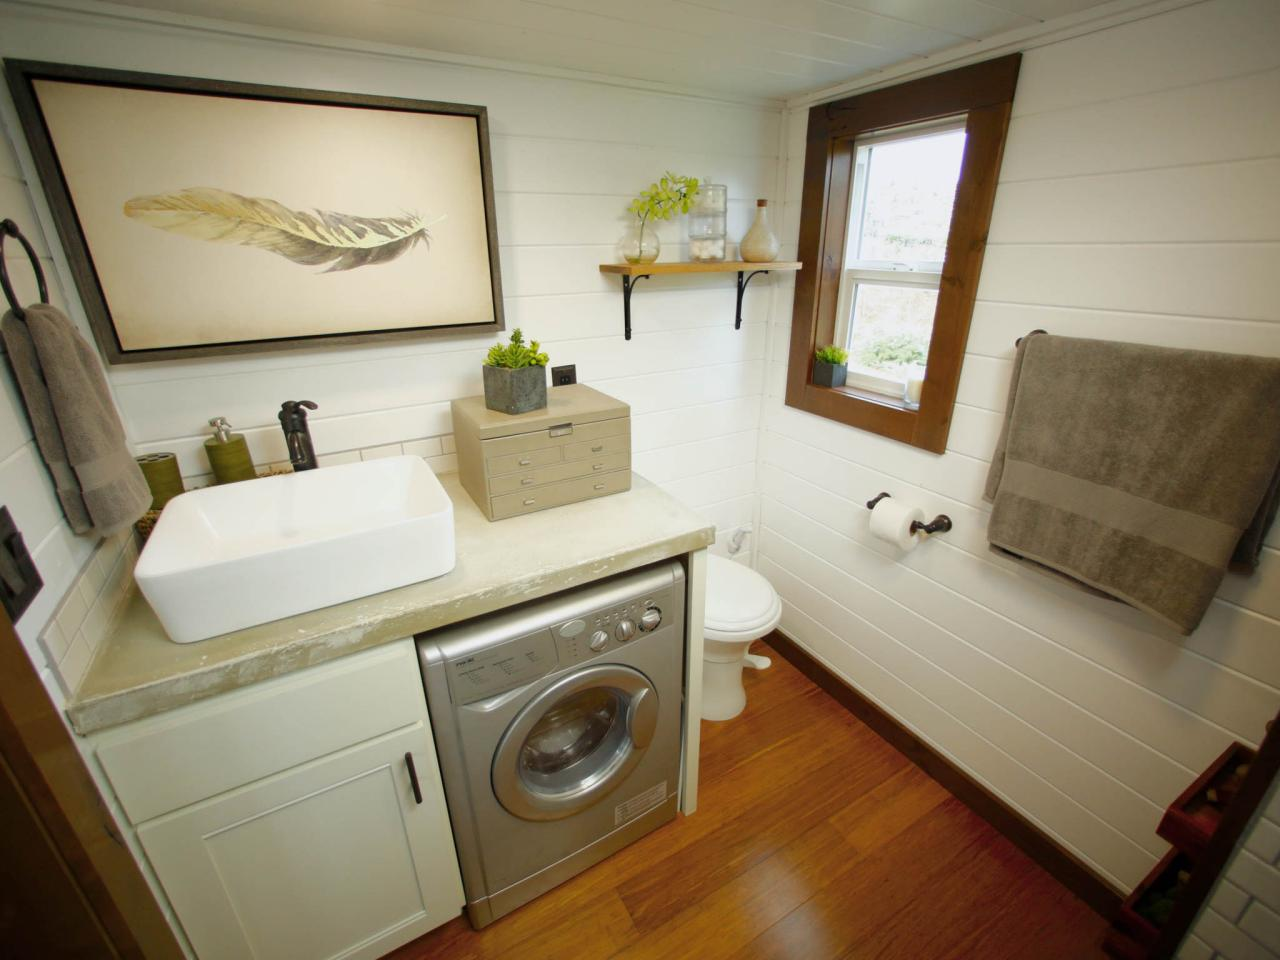 8 tiny house bathrooms packed with style hgtv 39 s for House bathroom design